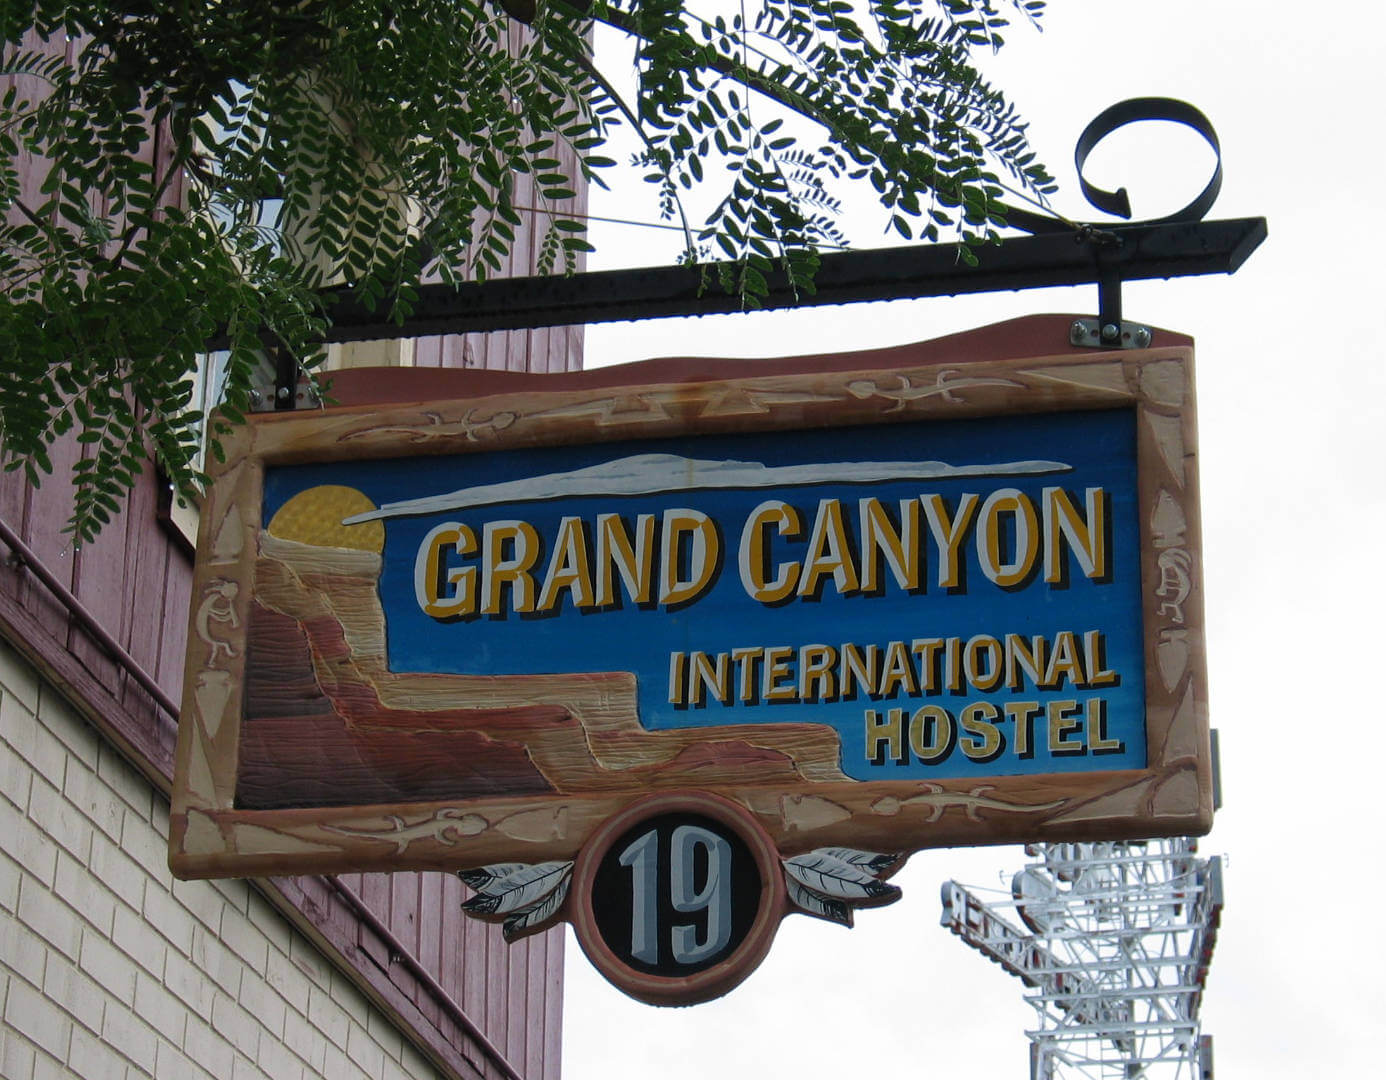 Sign for the Grand Canyon International Hostel in Flagstaff, Arizona.